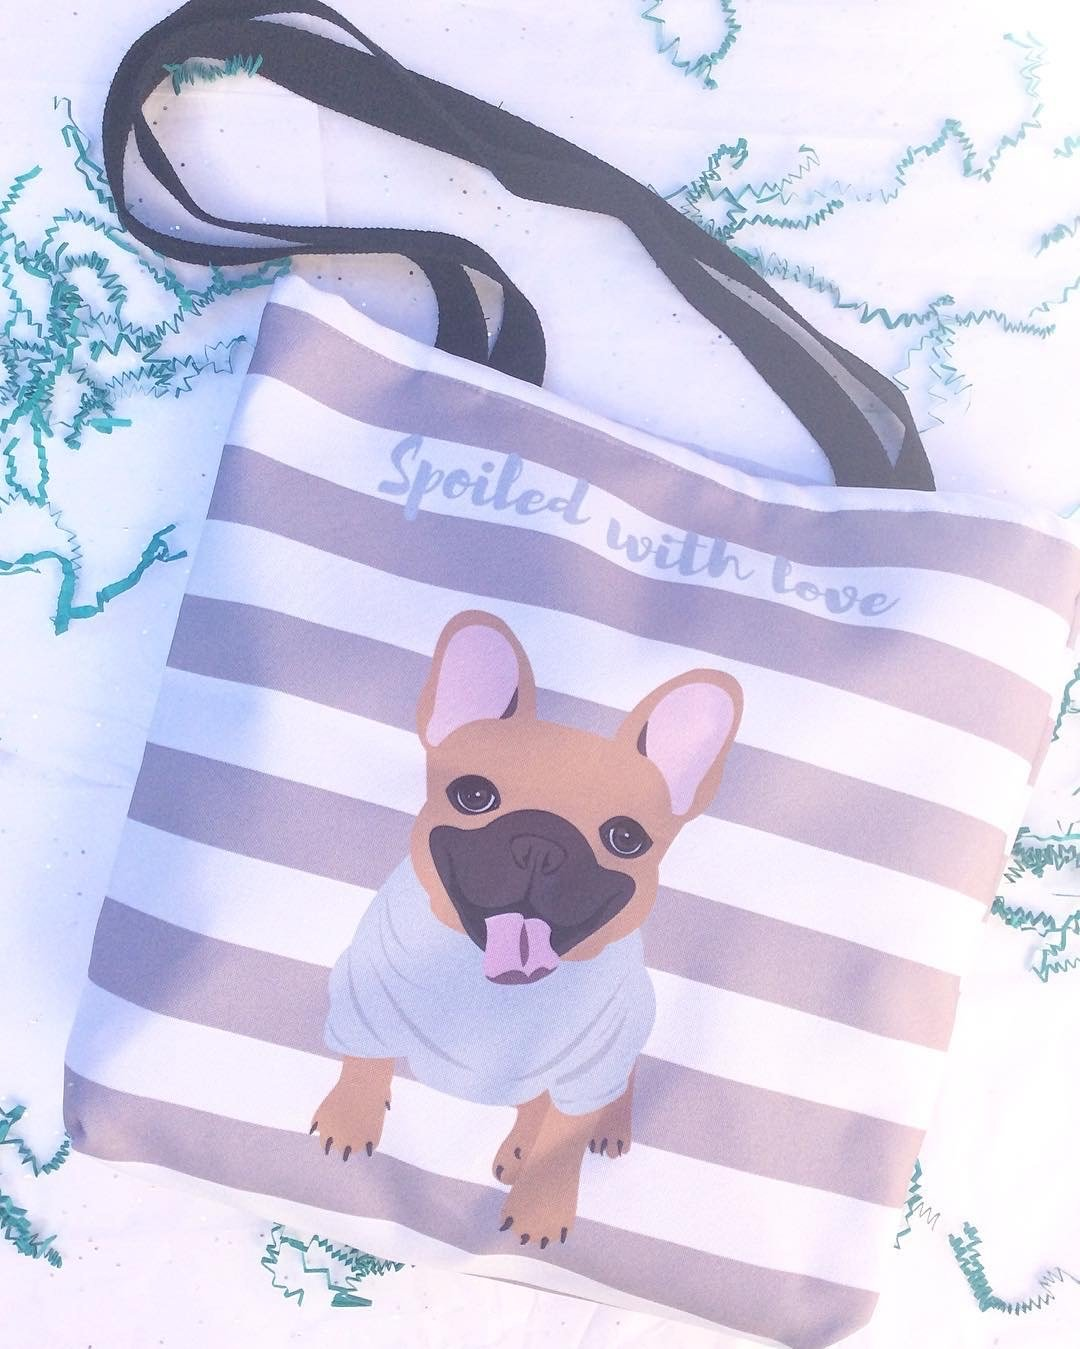 Fawn Male French Bulldog on Gray Stripes | Frenchiestore Tote bag, Frenchie Dog, French Bulldog pet products